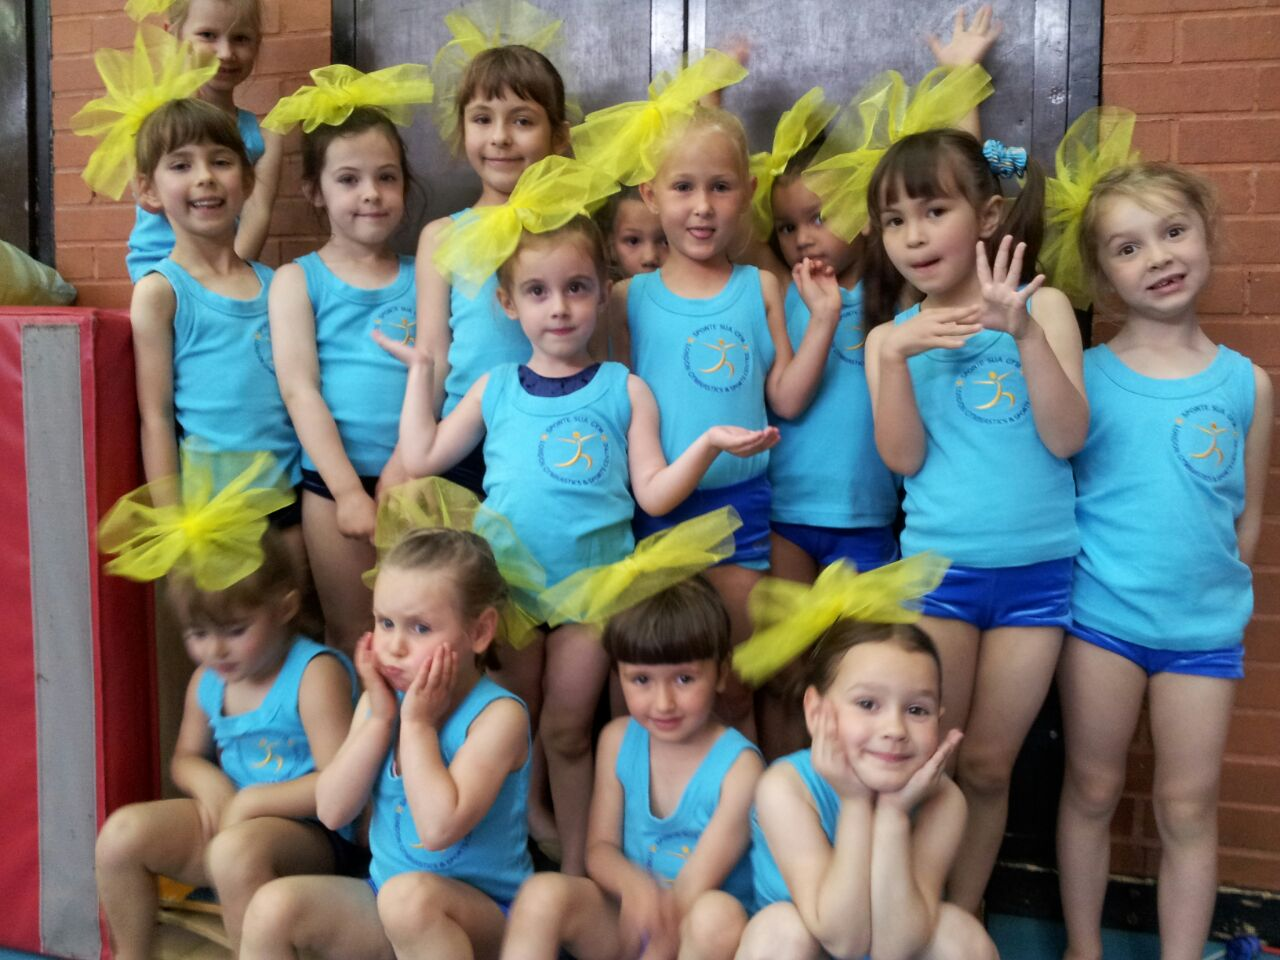 Southern Moves Festival - SSG 2015 minis